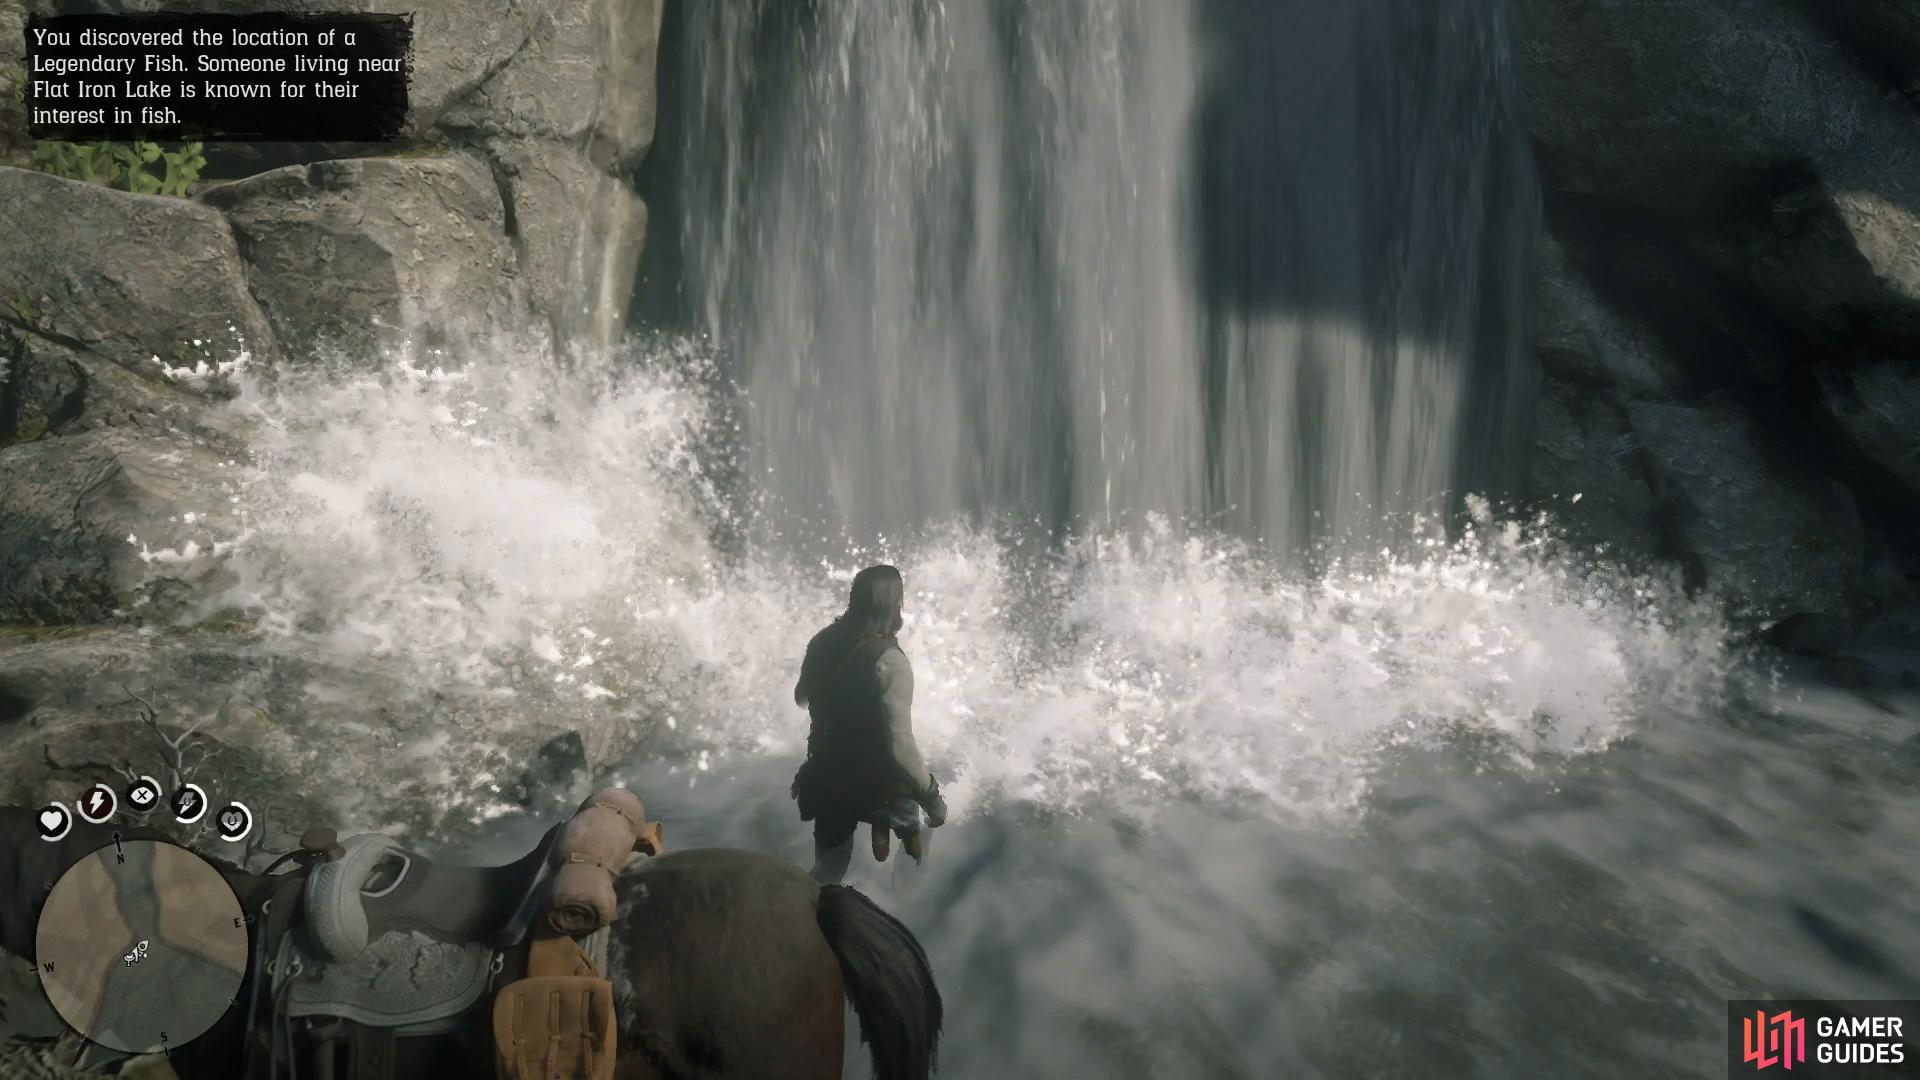 Head behind the waterfall to enter the cave